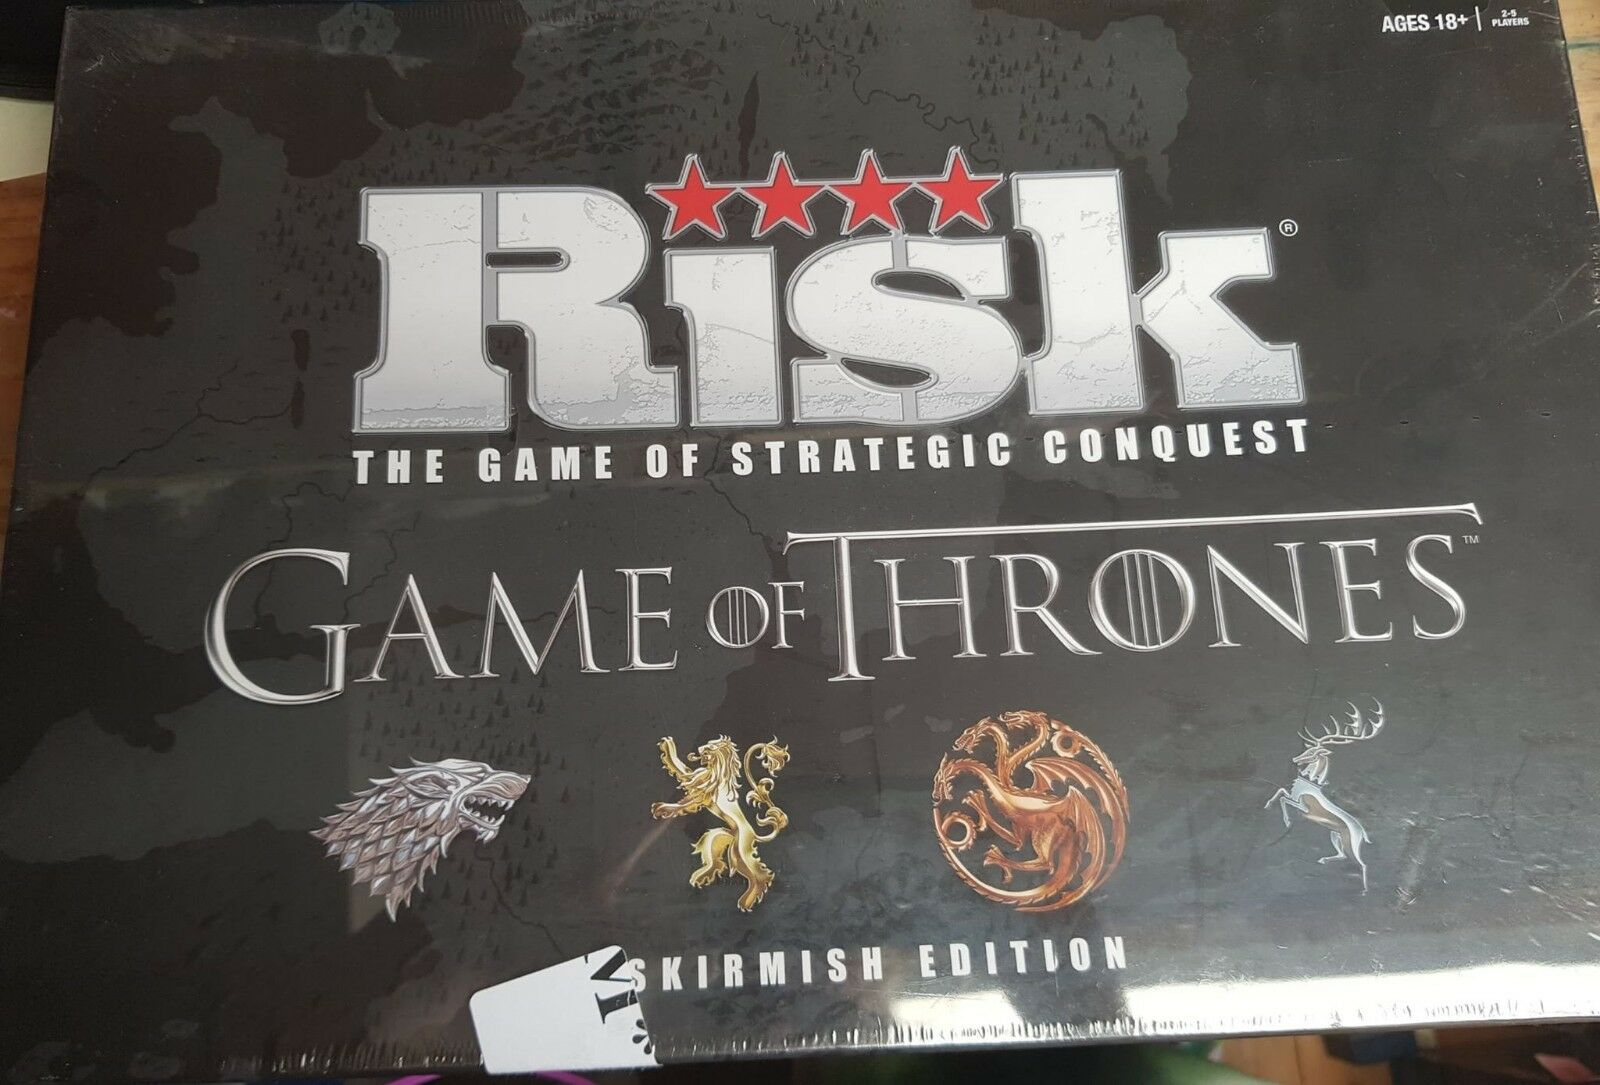 Game of Thrones Risk Board Game - The Skirmish Edition